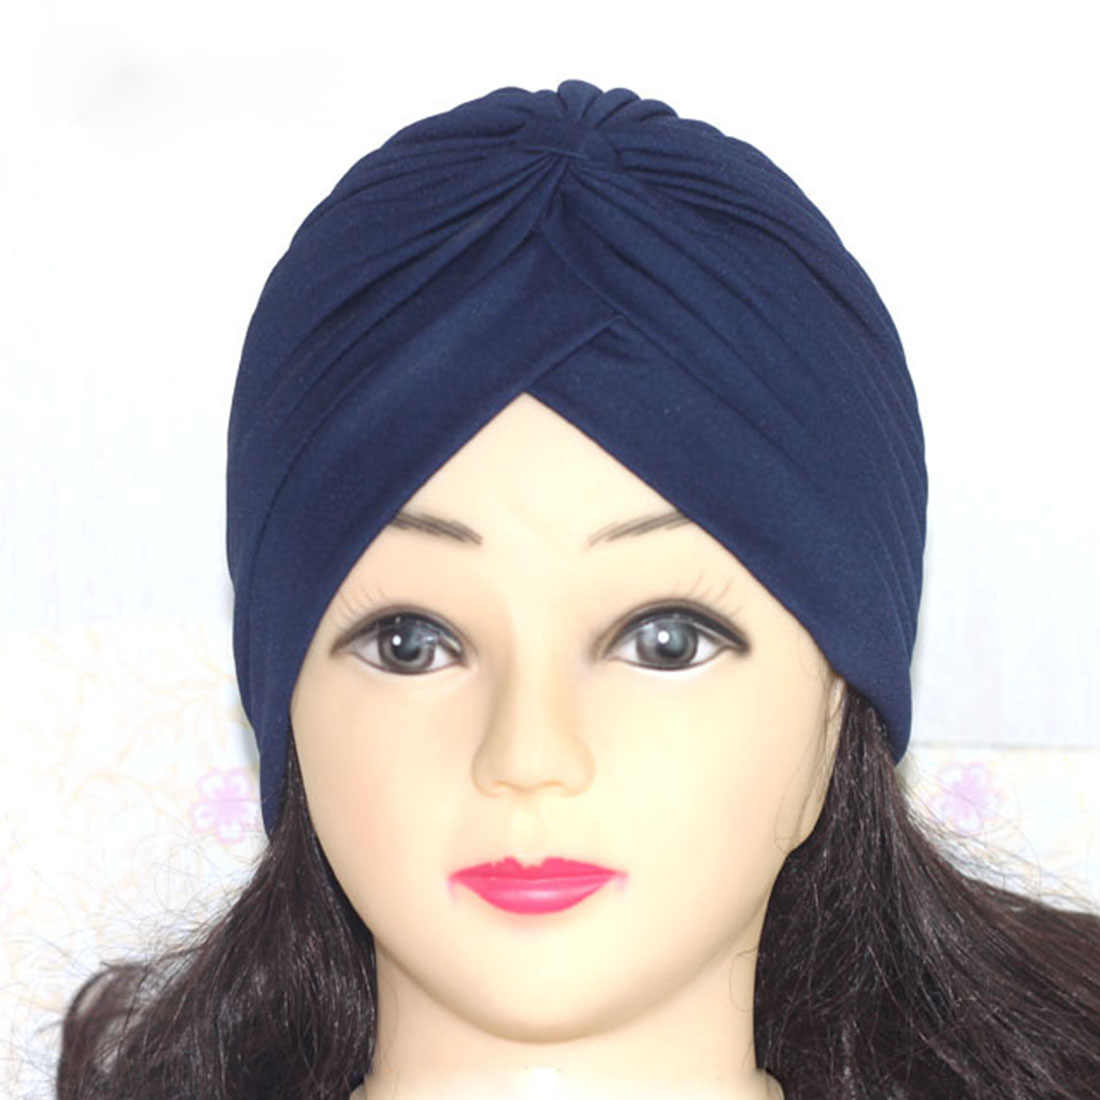 316d3d5392a ... Women Men Stretchy Turban Head Wrap Band Chemo Bandana Pleated Indian  Cap Skullies Beanies Prayer New